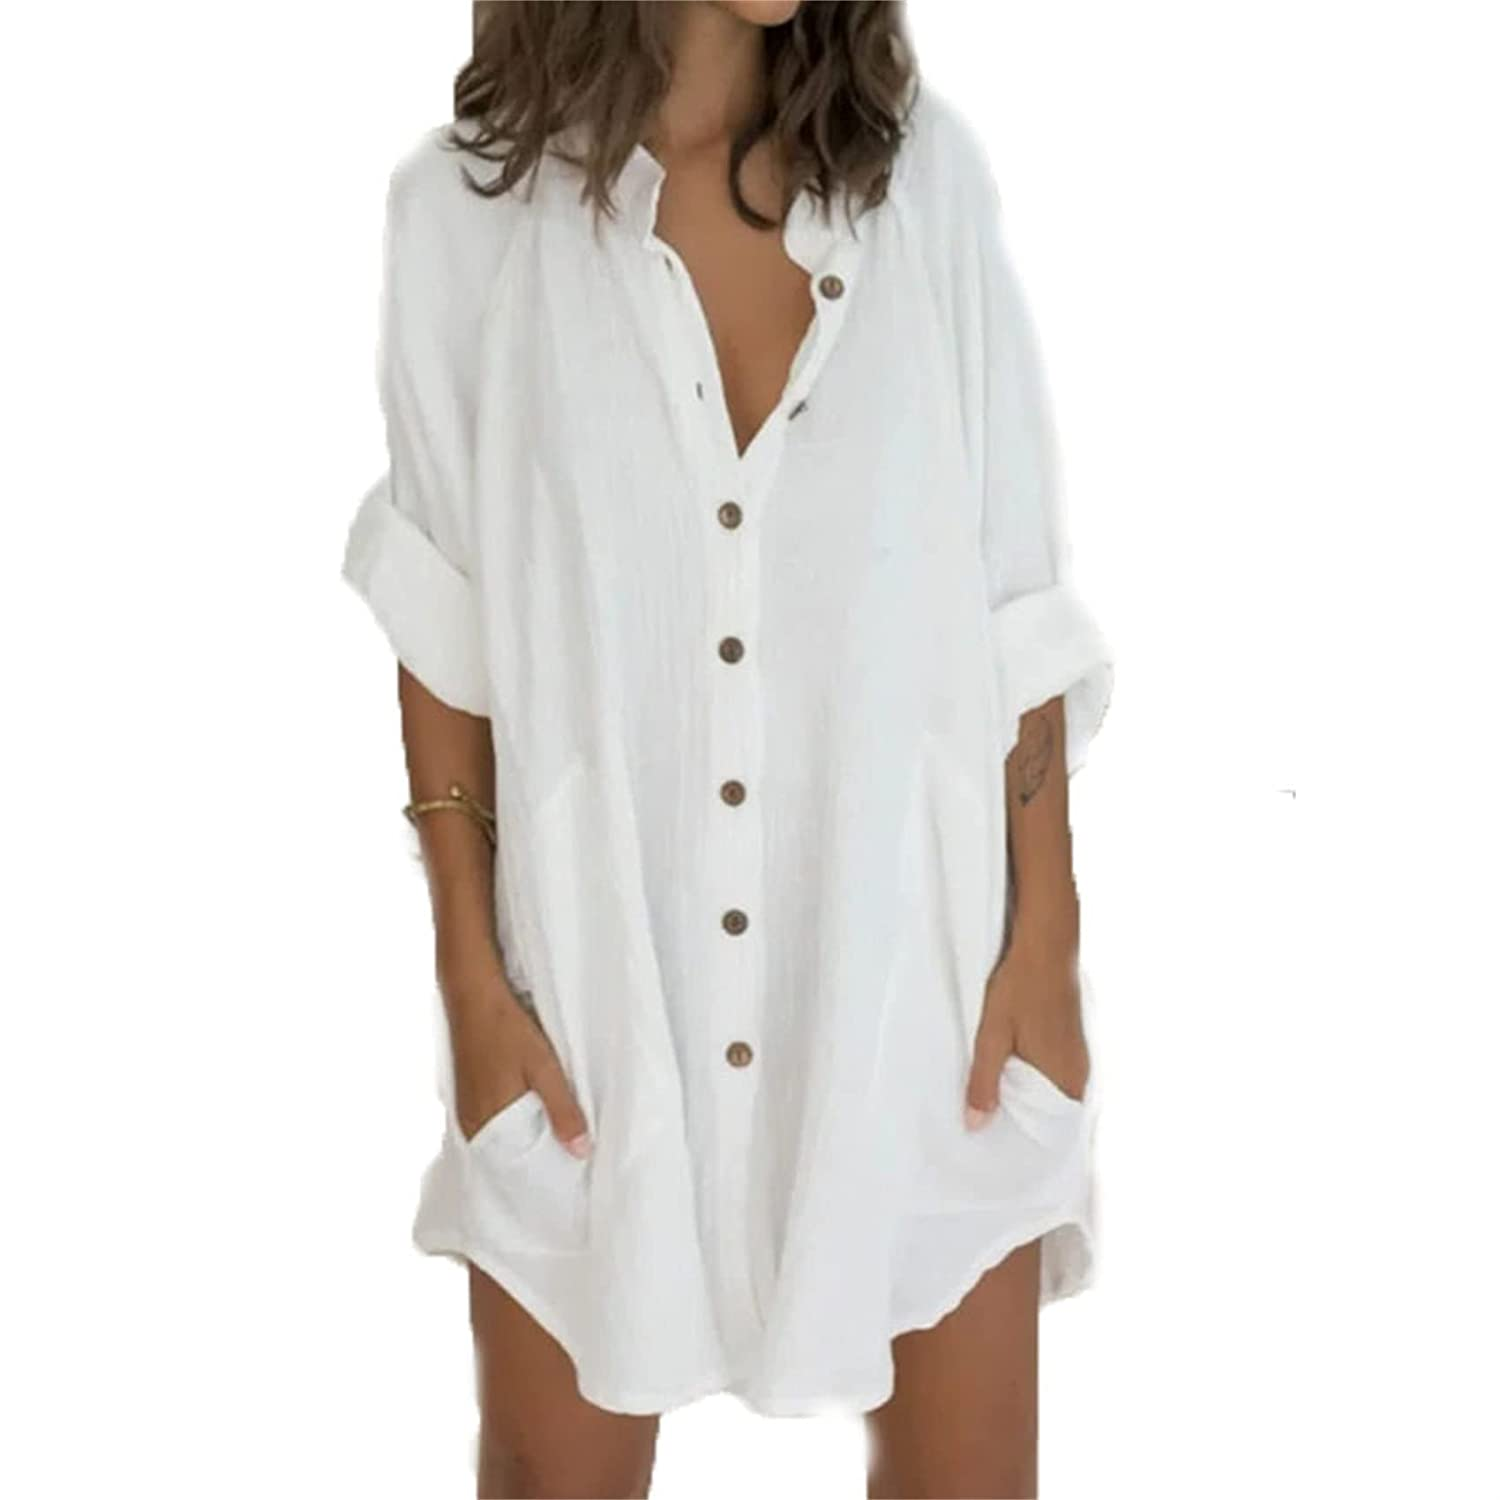 Women's Casual Linen Long Blouses Tops Button Down Shirts Cotton Shirt Dresses Tops with Pockets (Large,White)